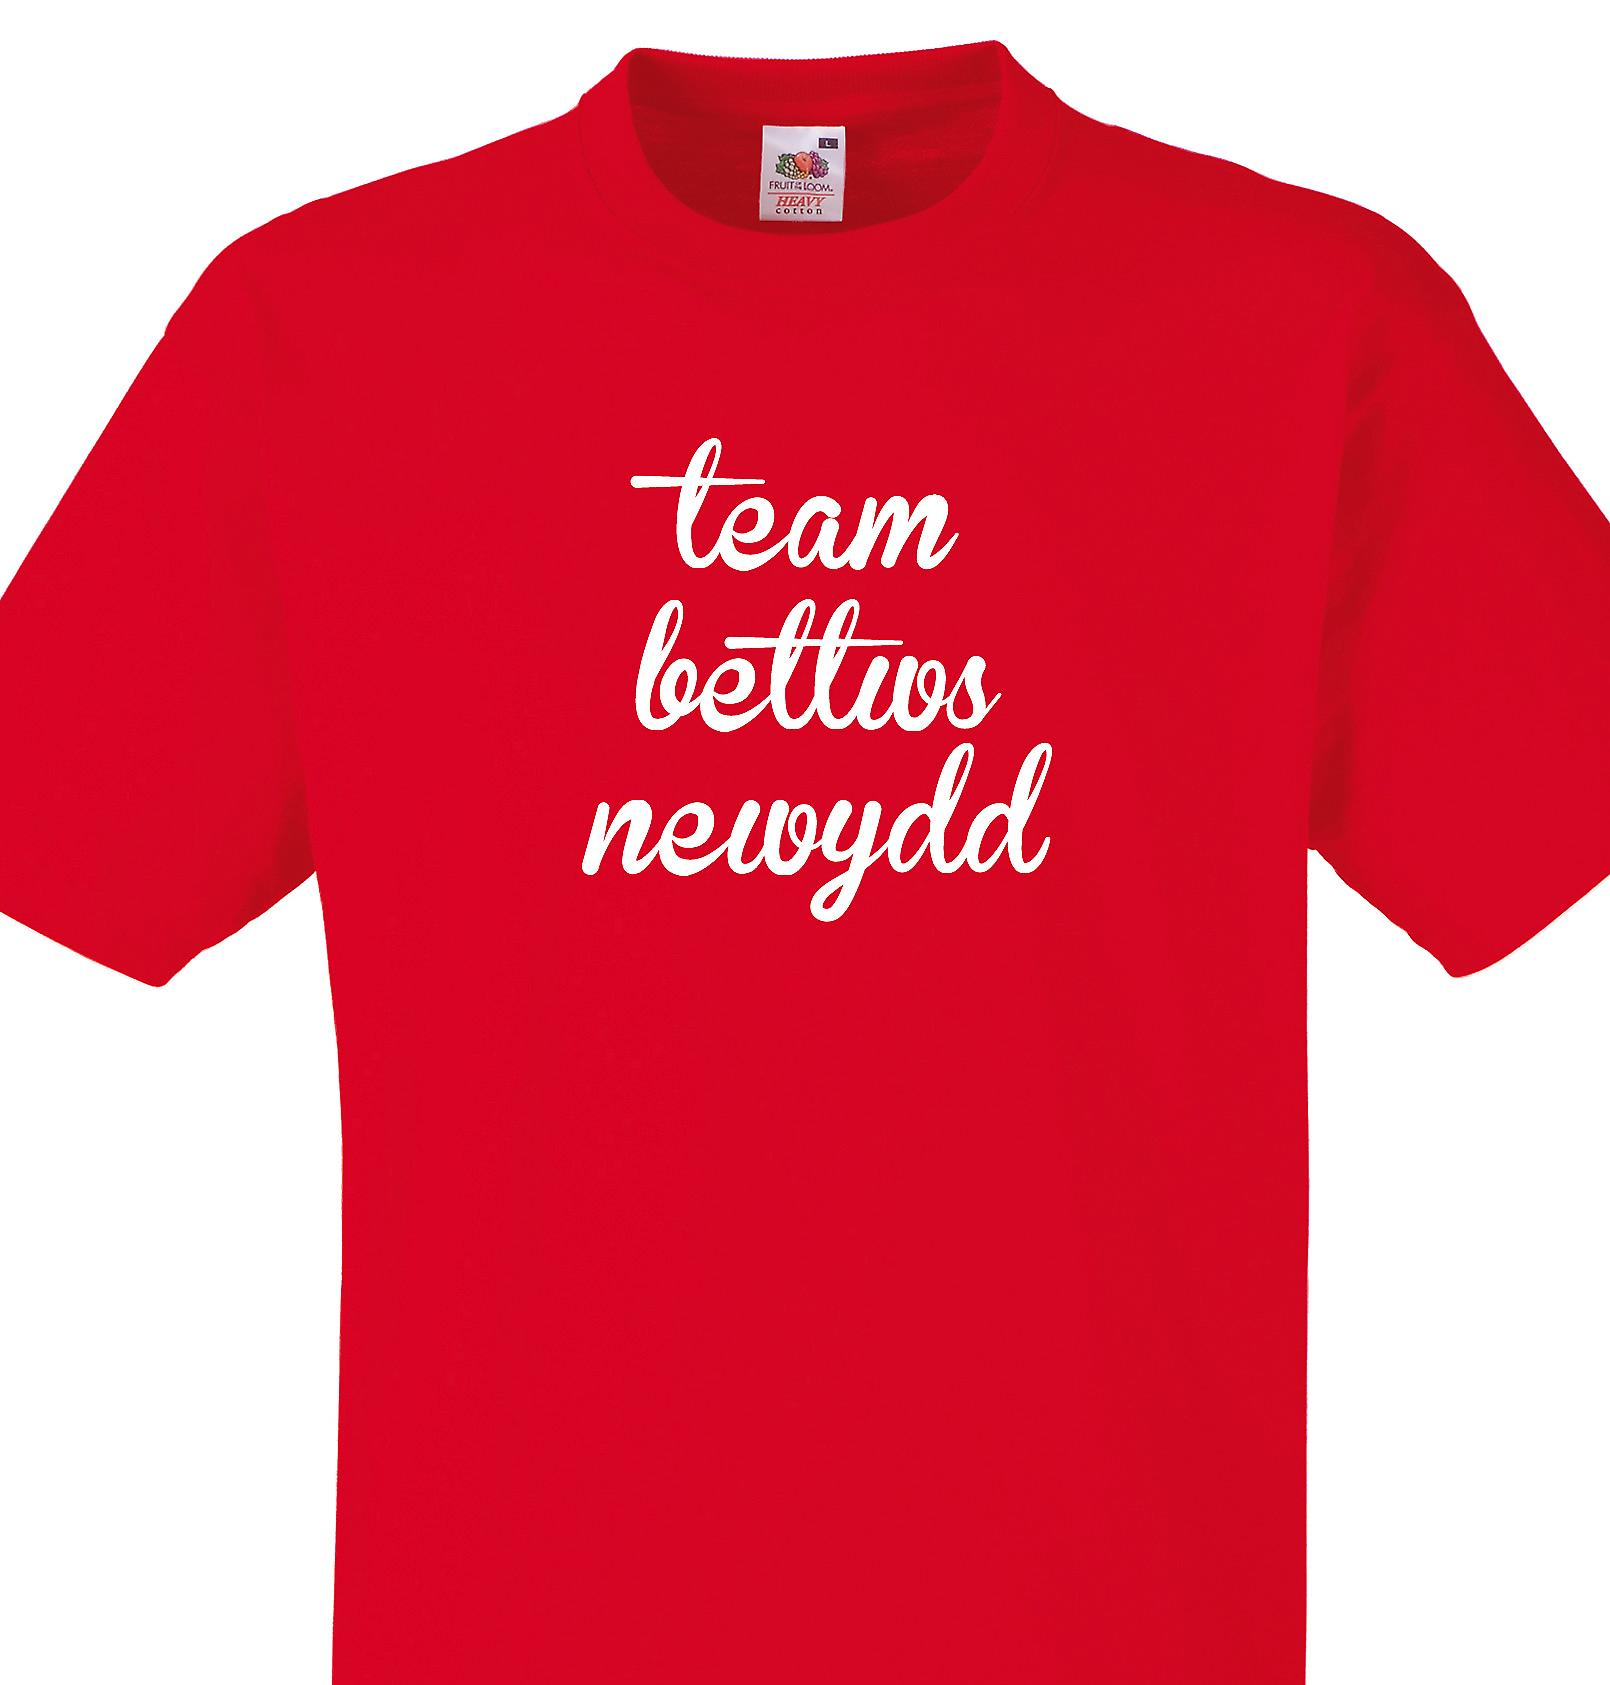 Team Bettws newydd Red T shirt